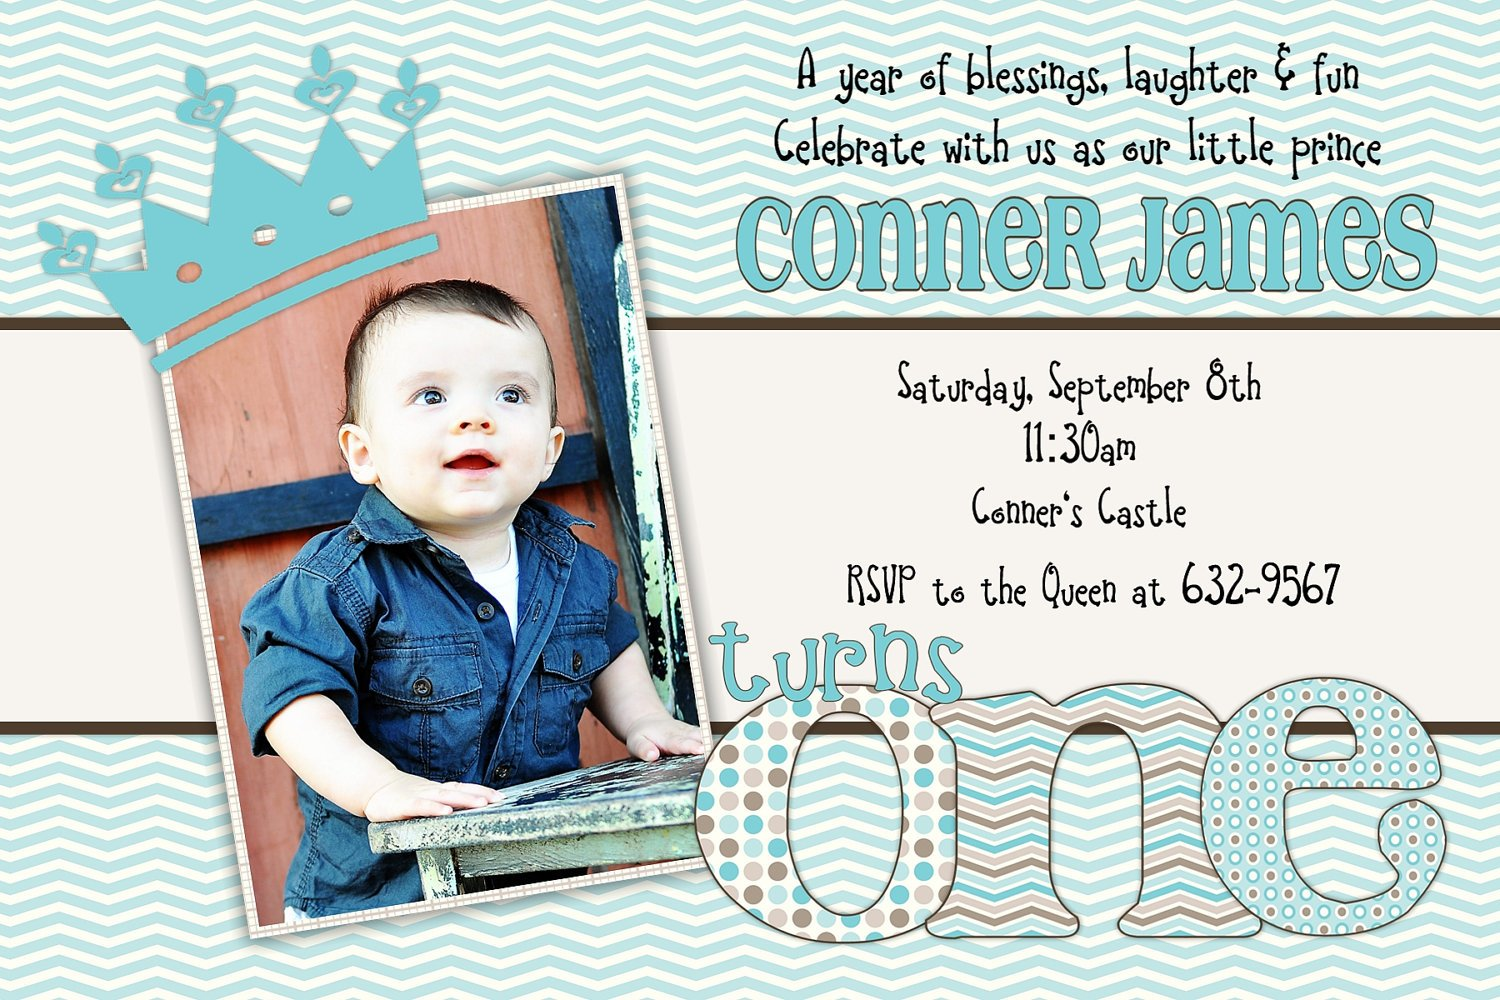 Baby boy birthday invites yeniscale baby boy birthday invites filmwisefo